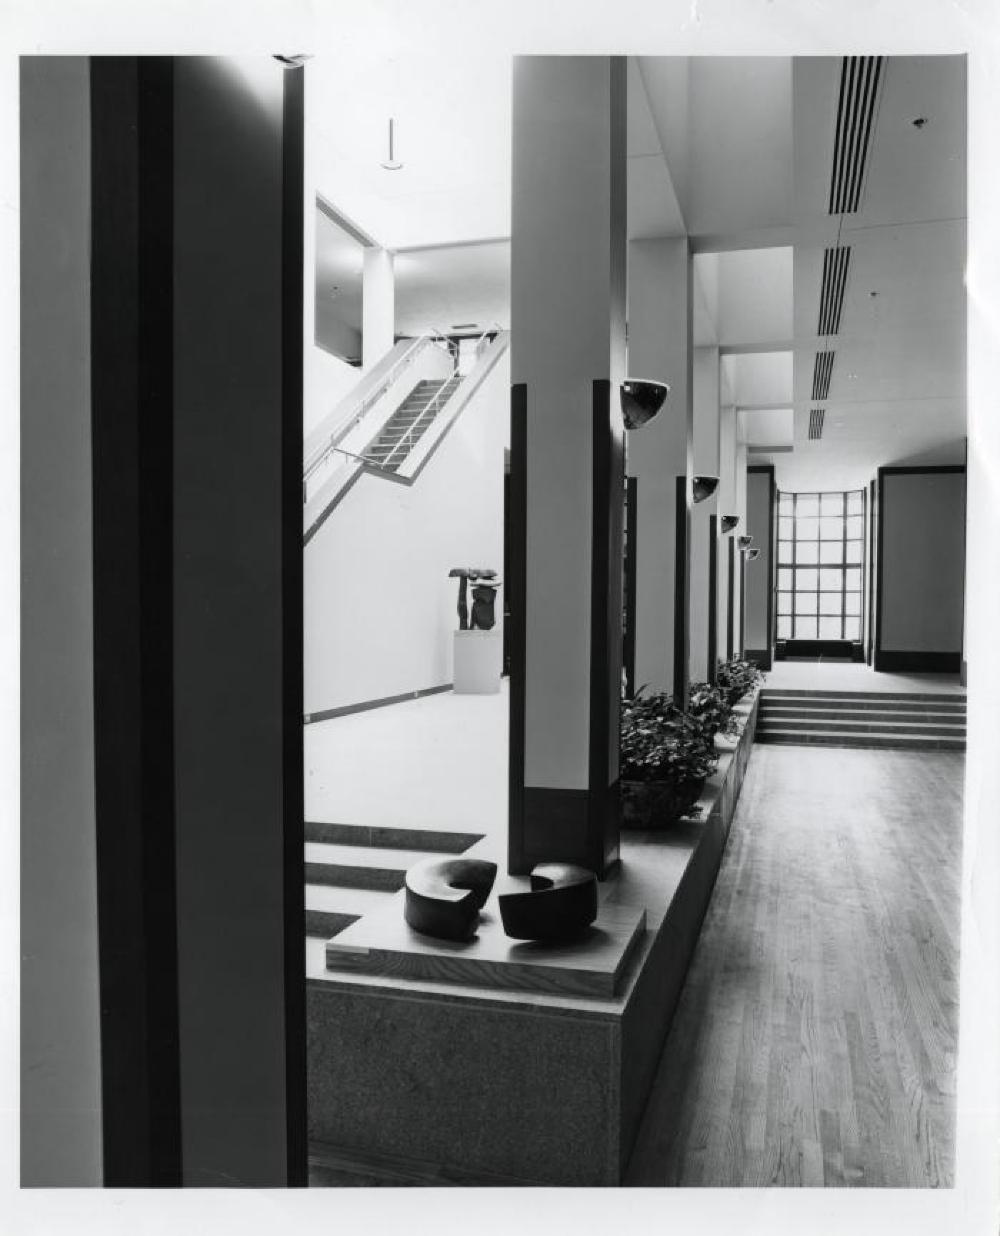 """""""The Life of the Mind:Focus on the Visual Arts A Bicentennial Ex. of the Am. Acad,"""" American Academy of Arts and Sciences, May 14, 1981 - June 15, 1981."""